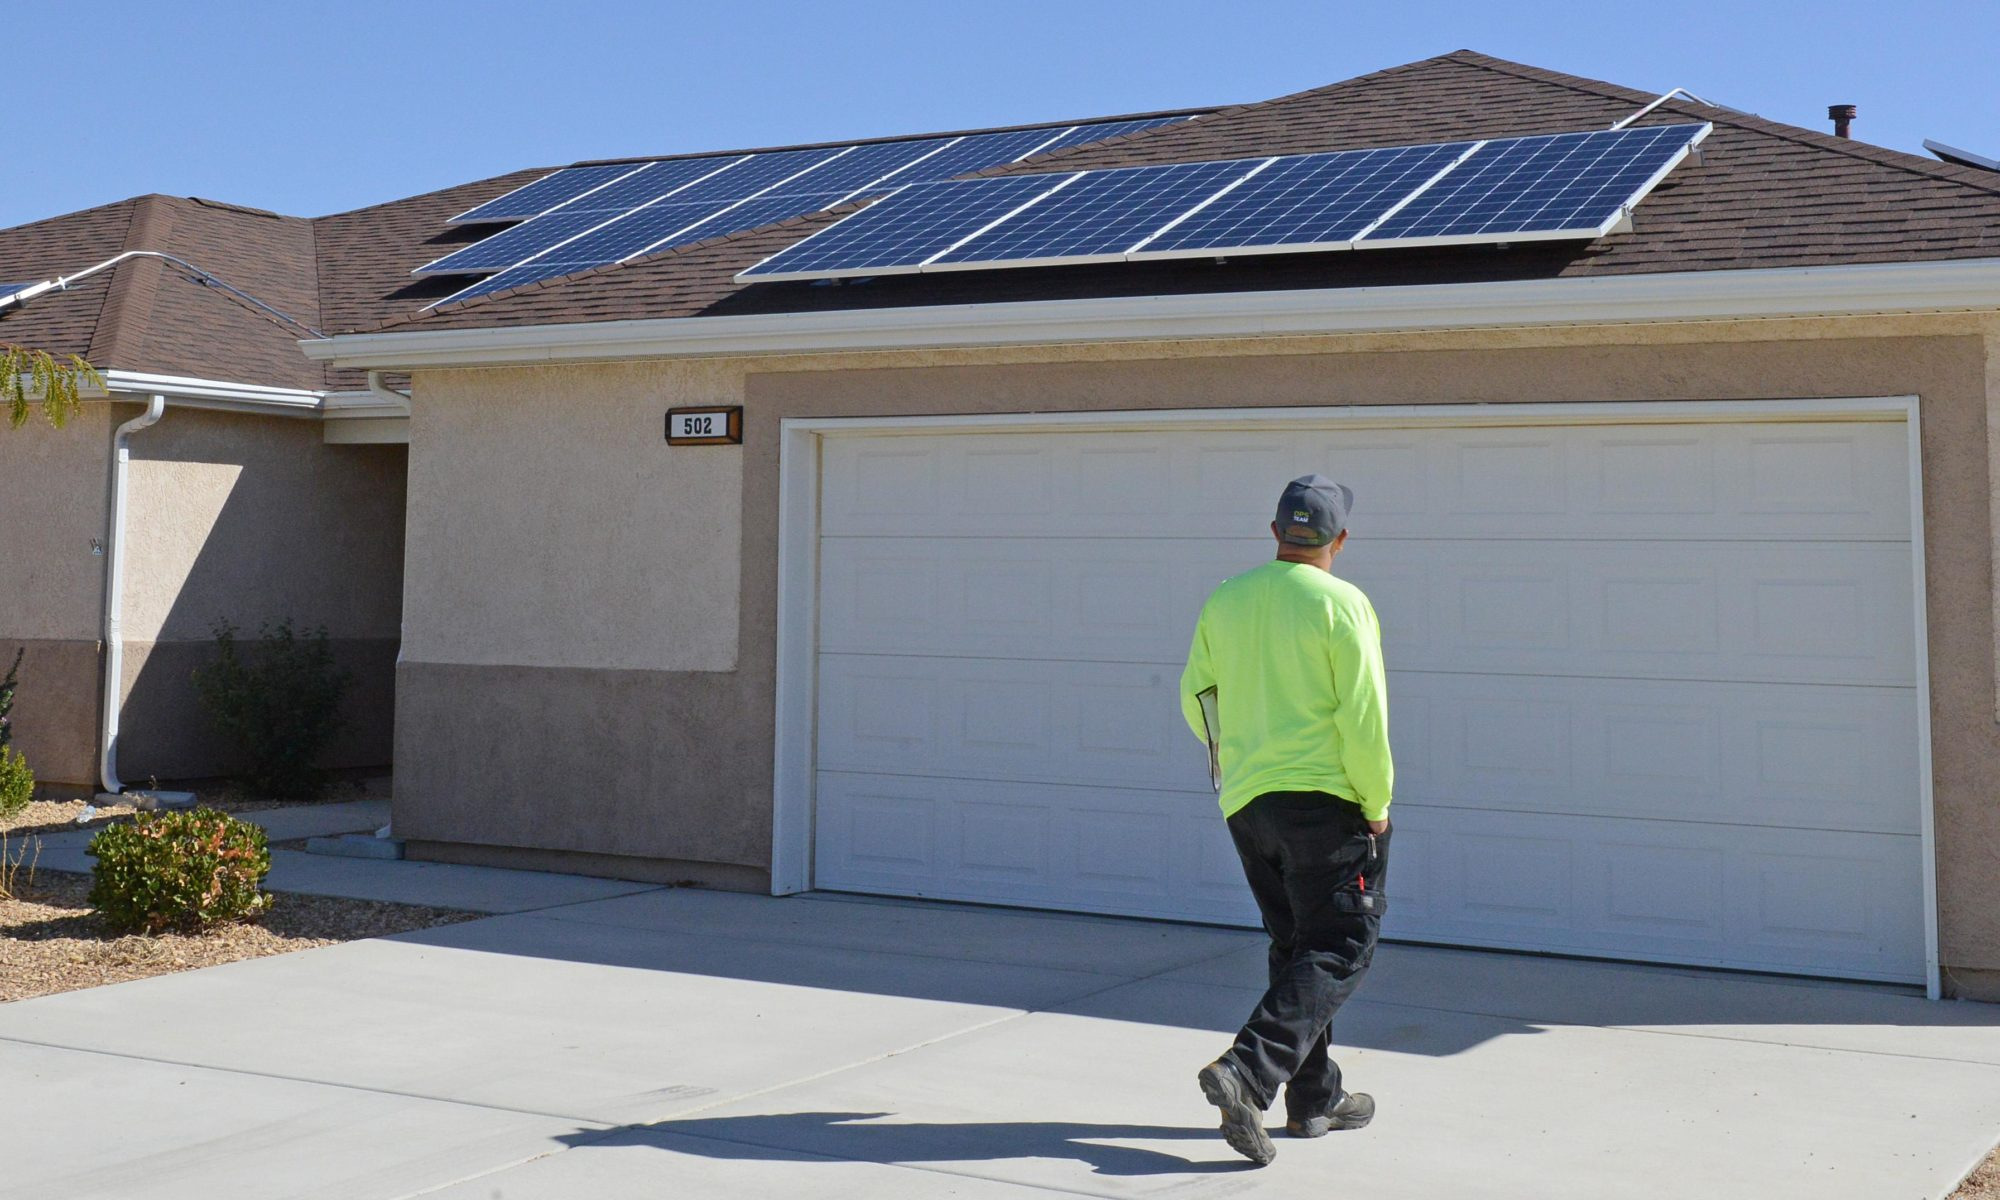 How Much Does It Cost To Put Solar Panels In A House?